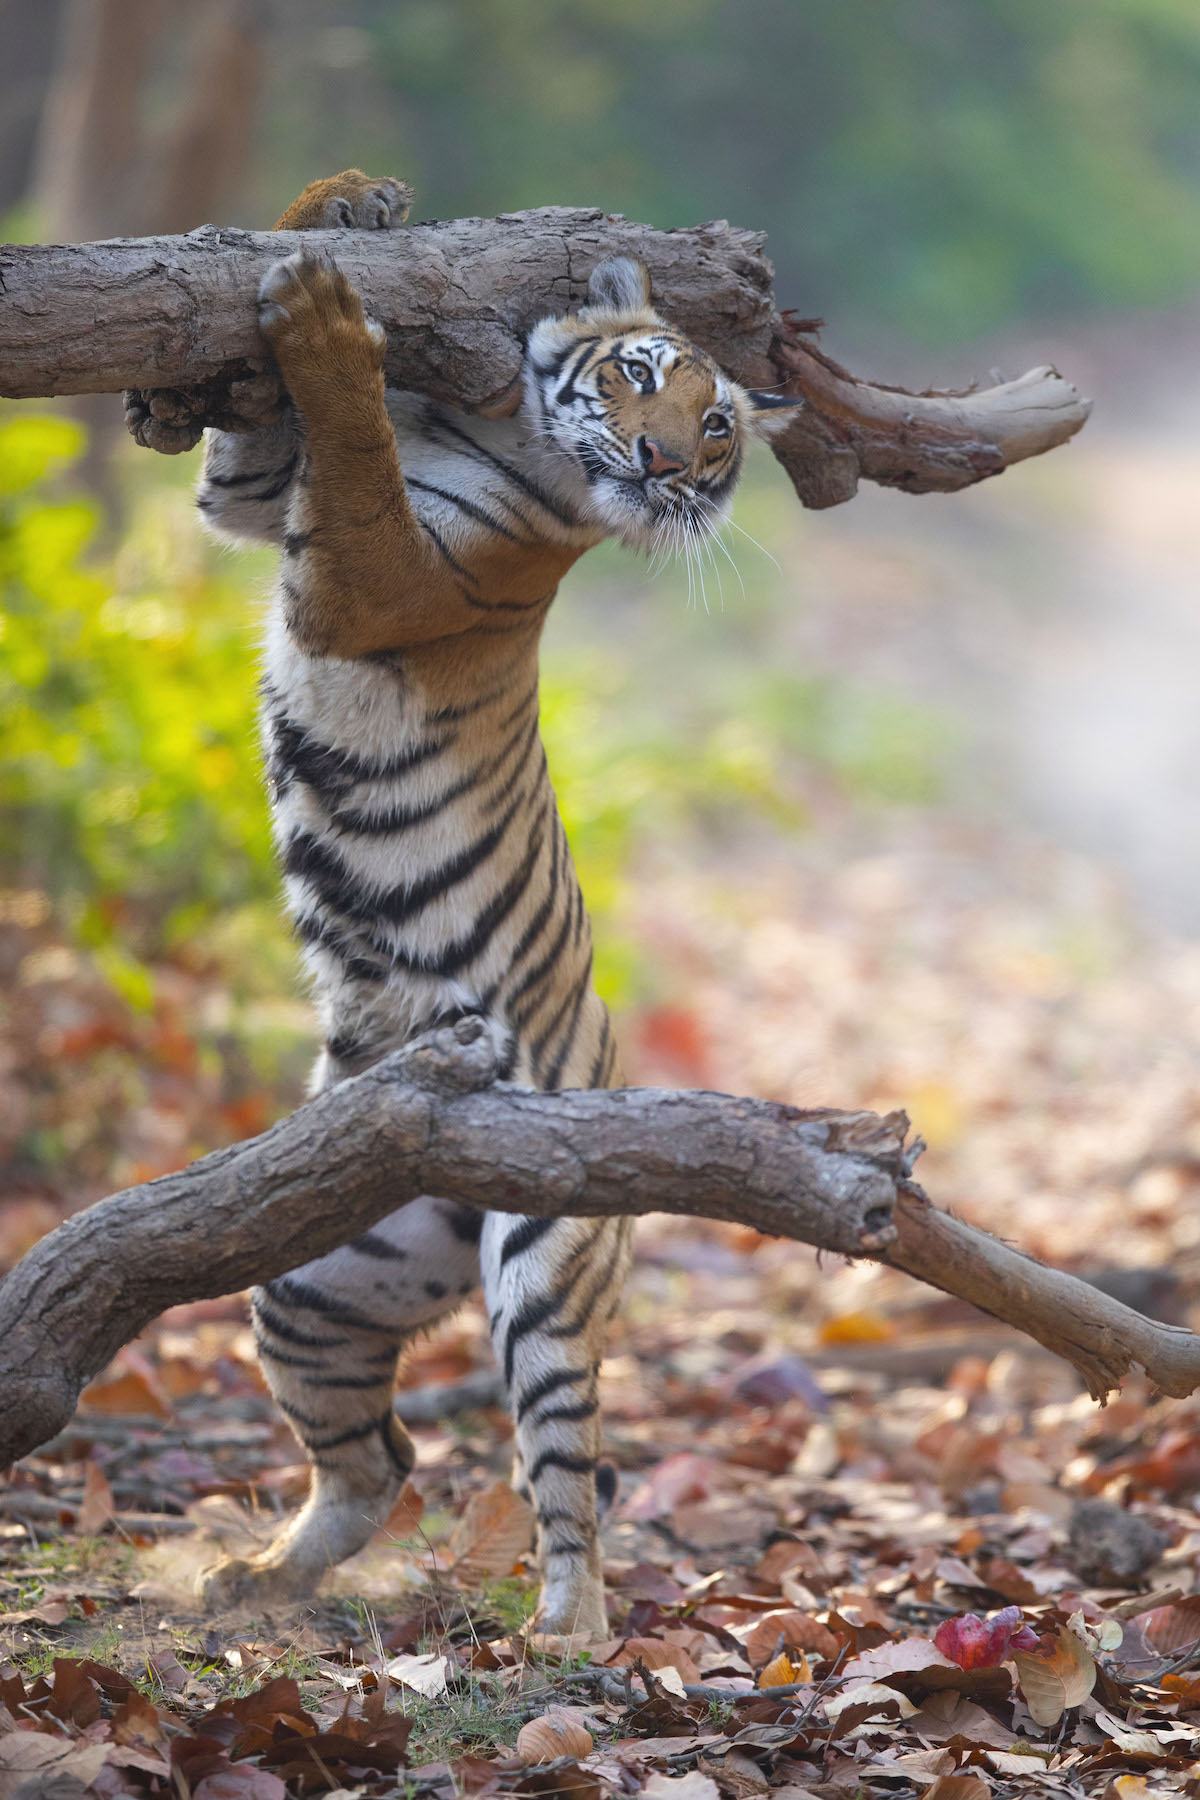 Female Tiger Looking Like She's Carrying a Log